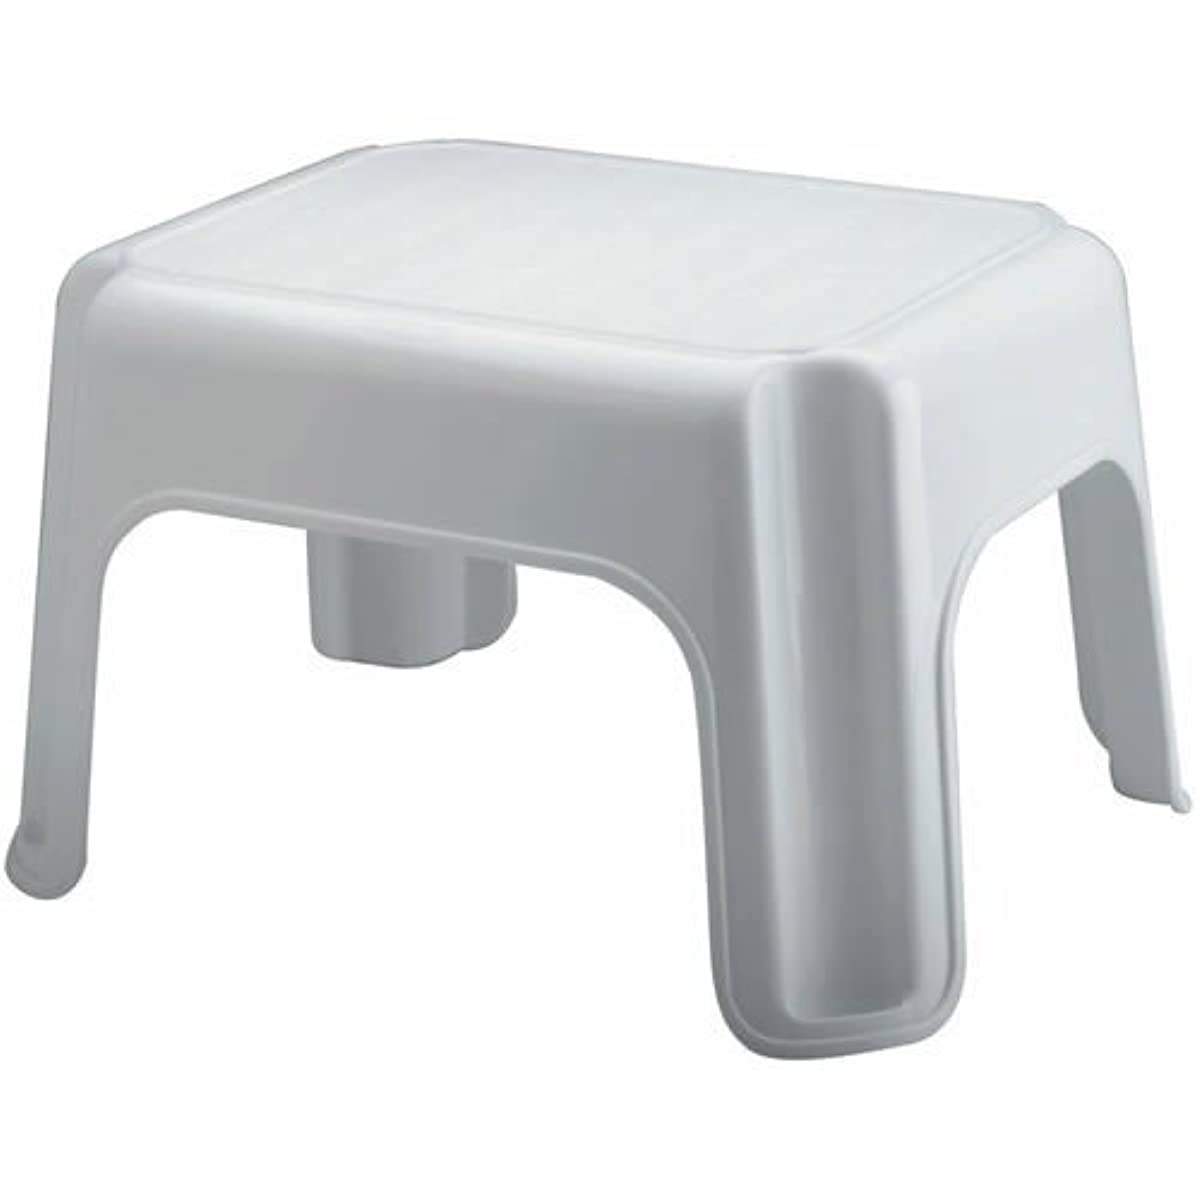 Rubbermaid - Step Stool With Mold Tread, (12.5 x 15.5 x 9.5 in),White,300lbs